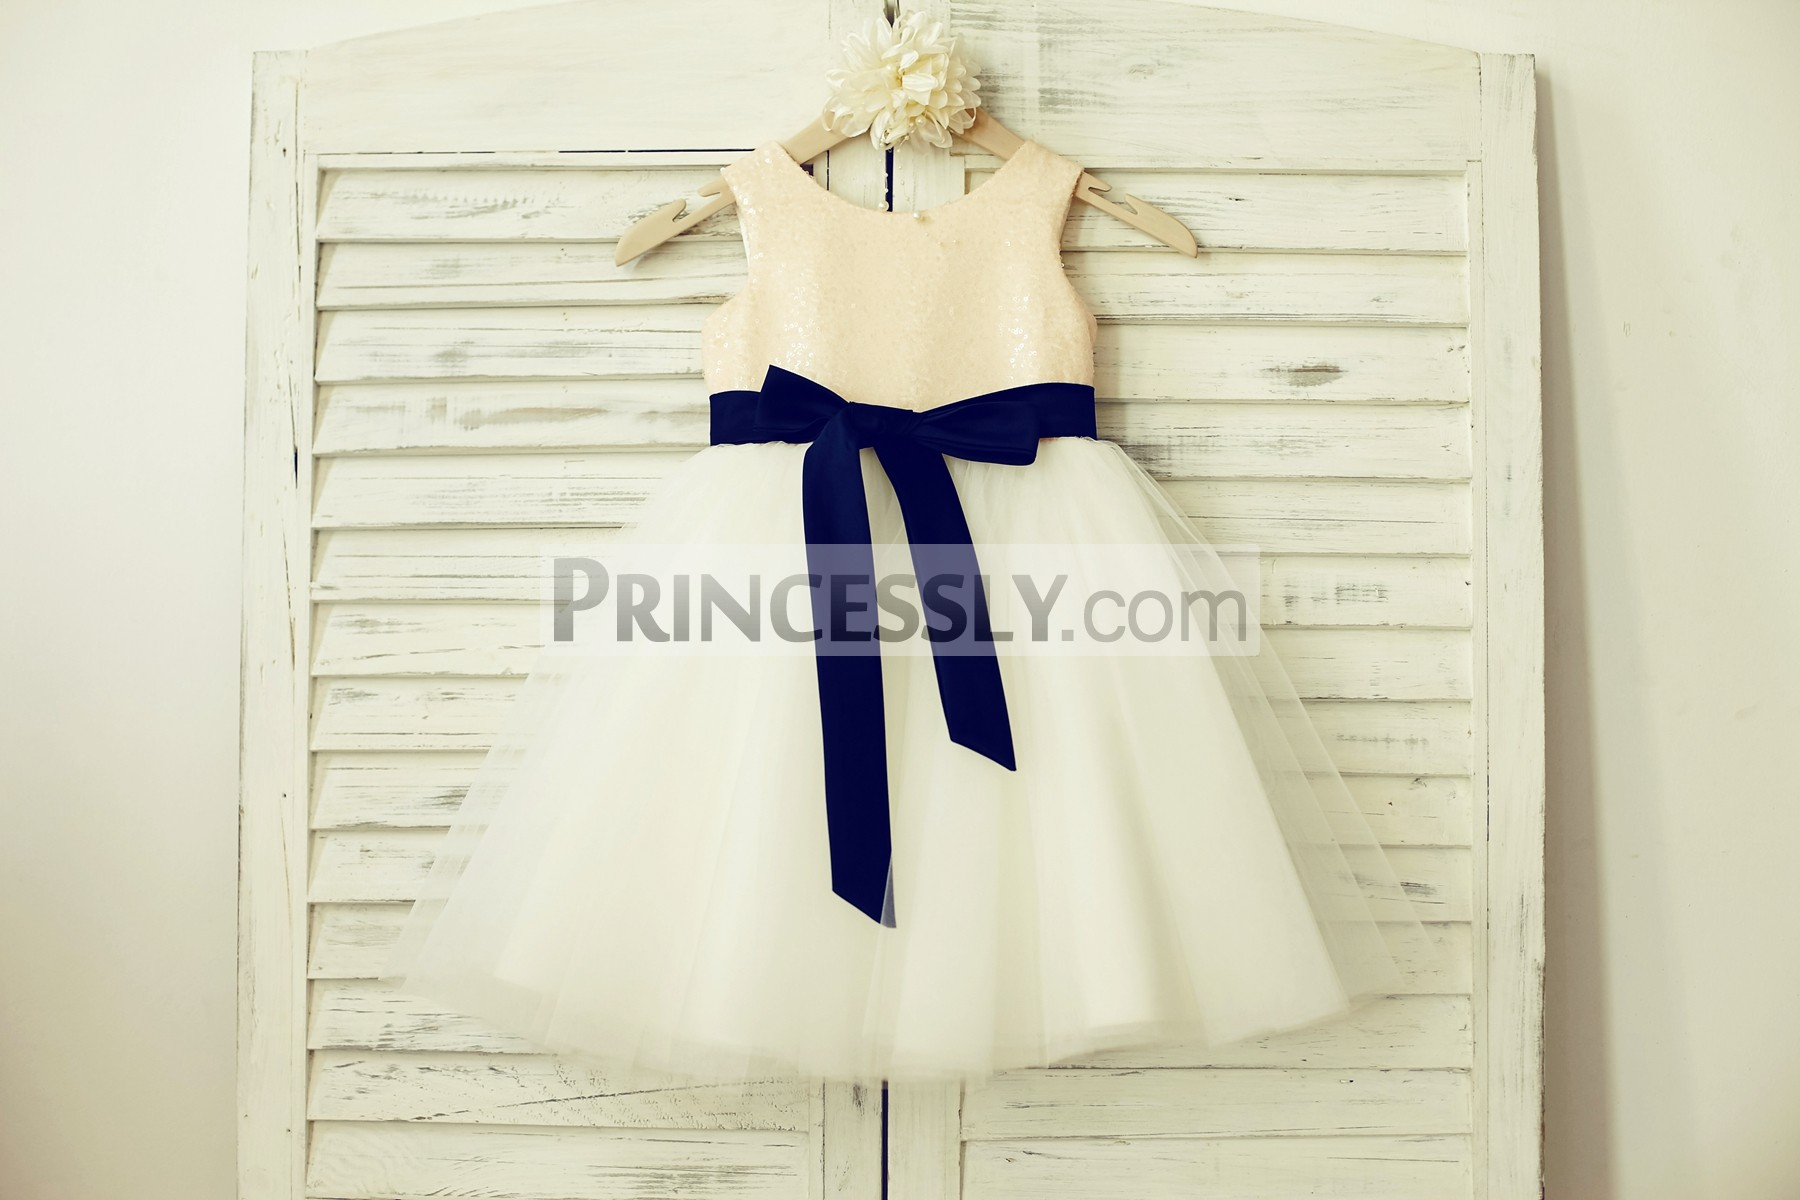 Peach pink sequin ivory tulle wedding baby girl dress with navy blue sash